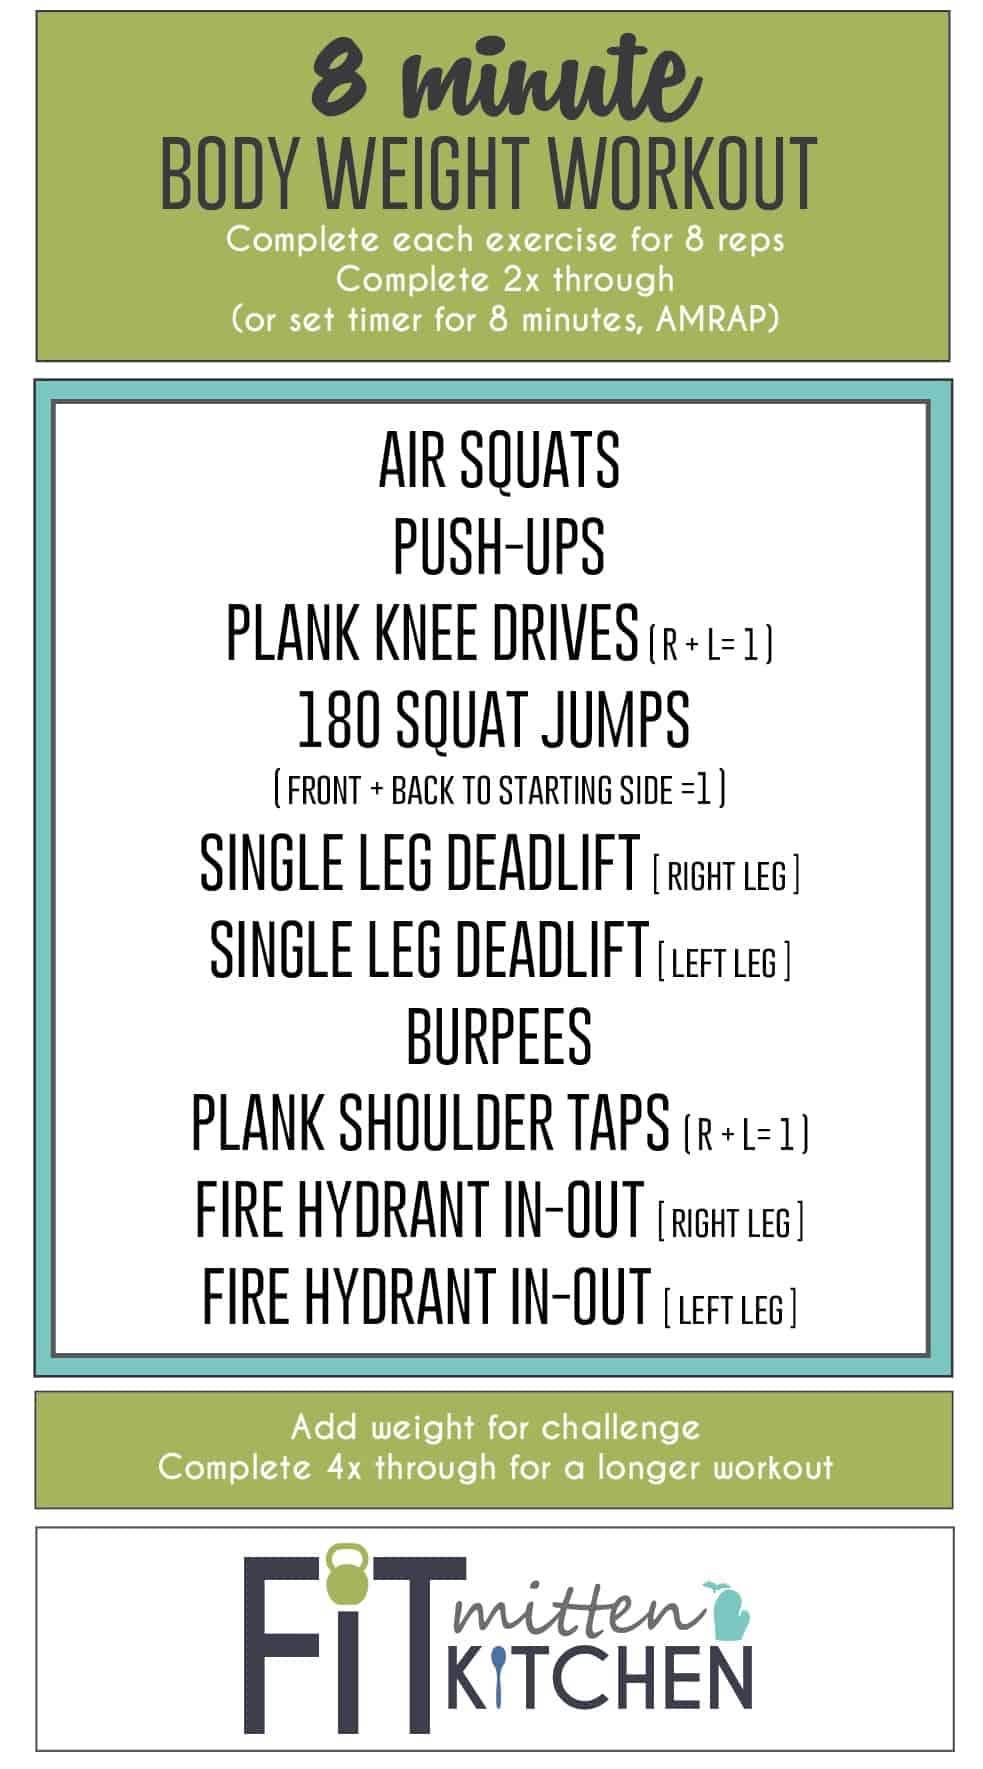 This quick workout can be done anywhere and at anytime! You could even do this 8 Minute Body Weight Workout in the kitchen while cookies are in the oven...